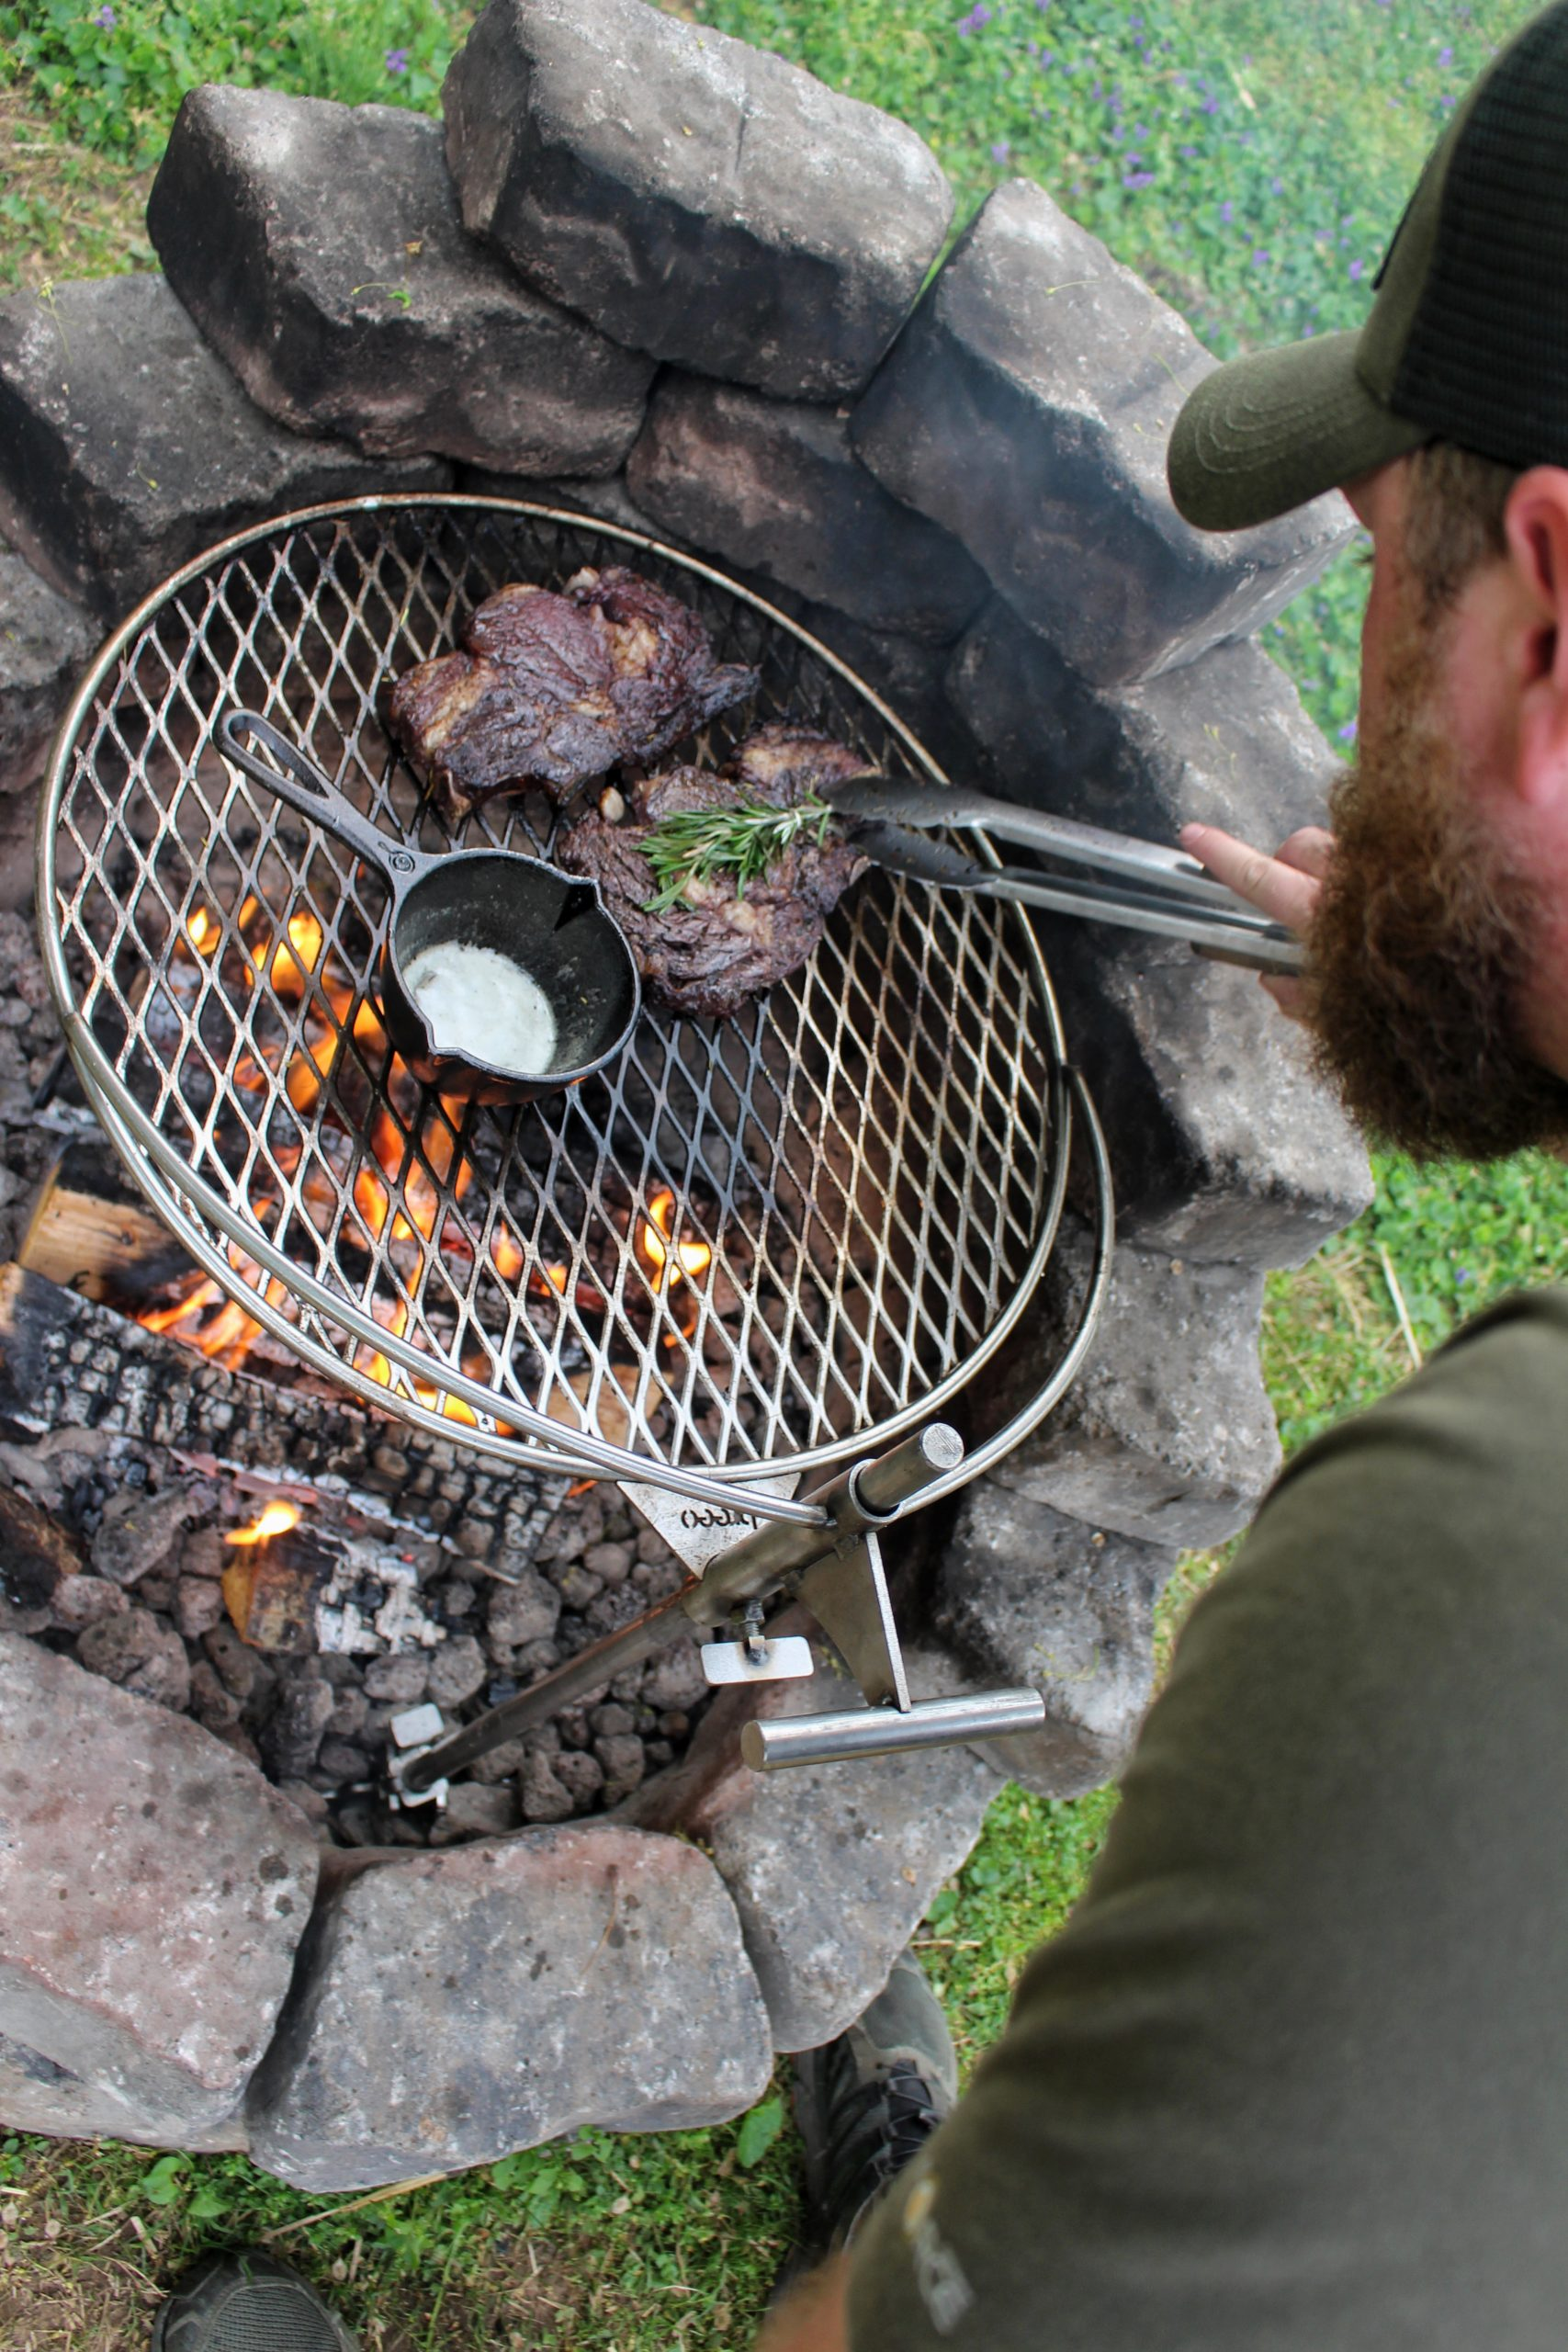 breeo outpost is essential fire cooking gear